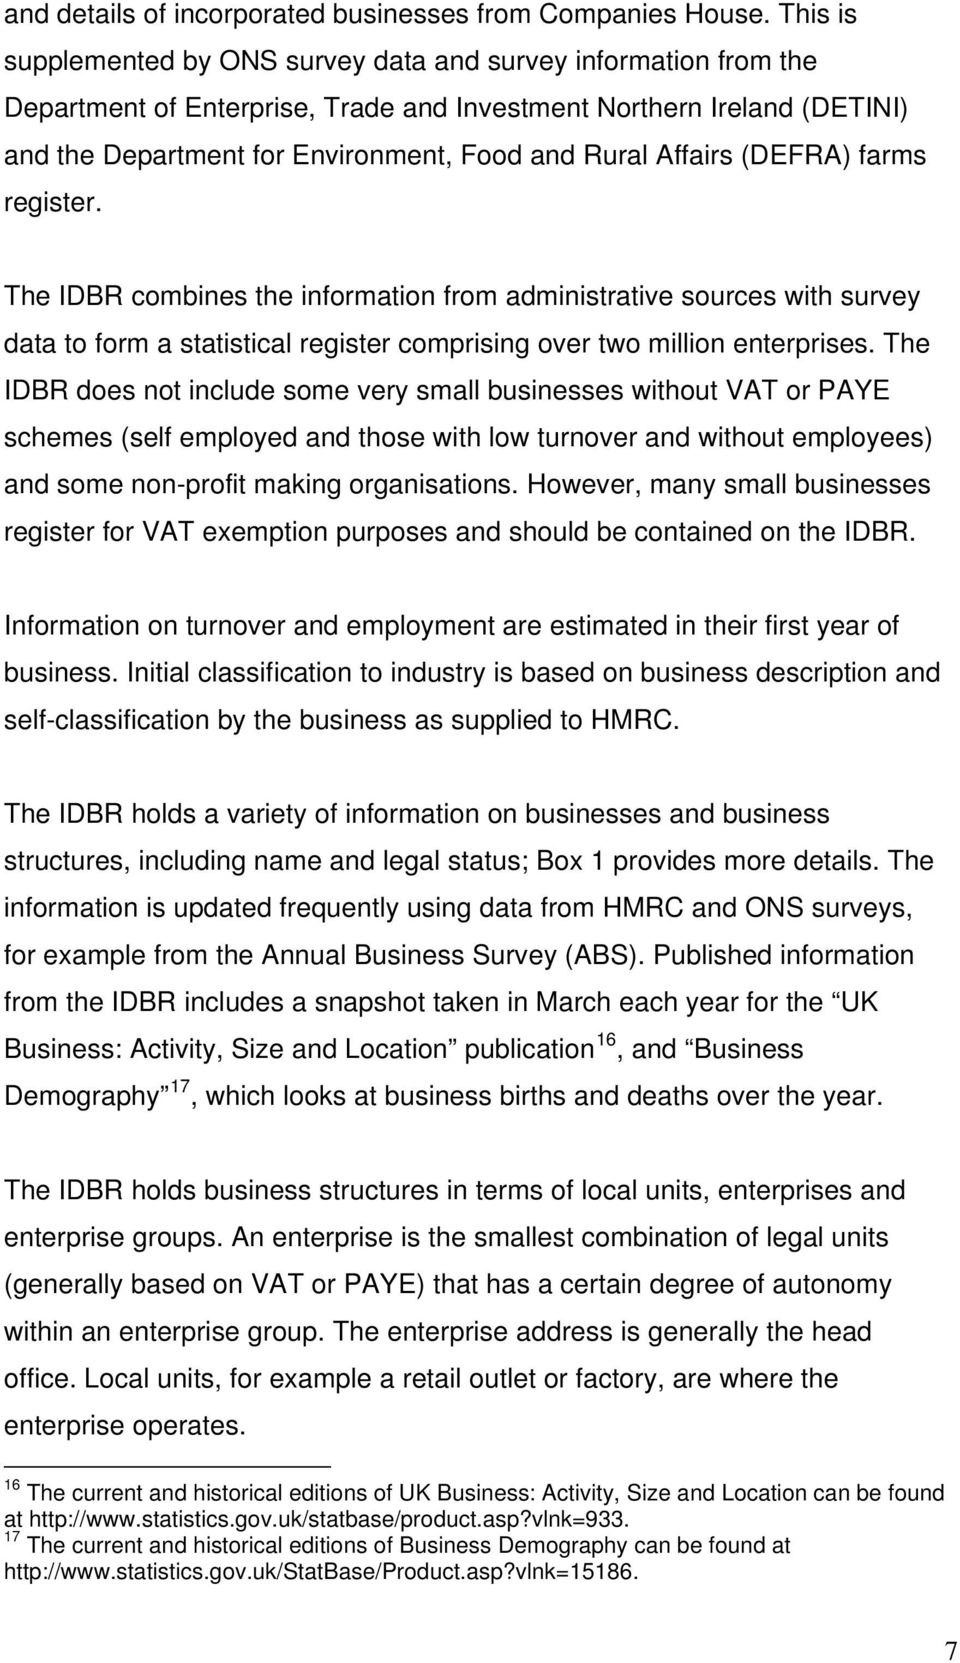 Affairs (DEFRA) farms register. The IDBR combines the information from administrative sources with survey data to form a statistical register comprising over two million enterprises.